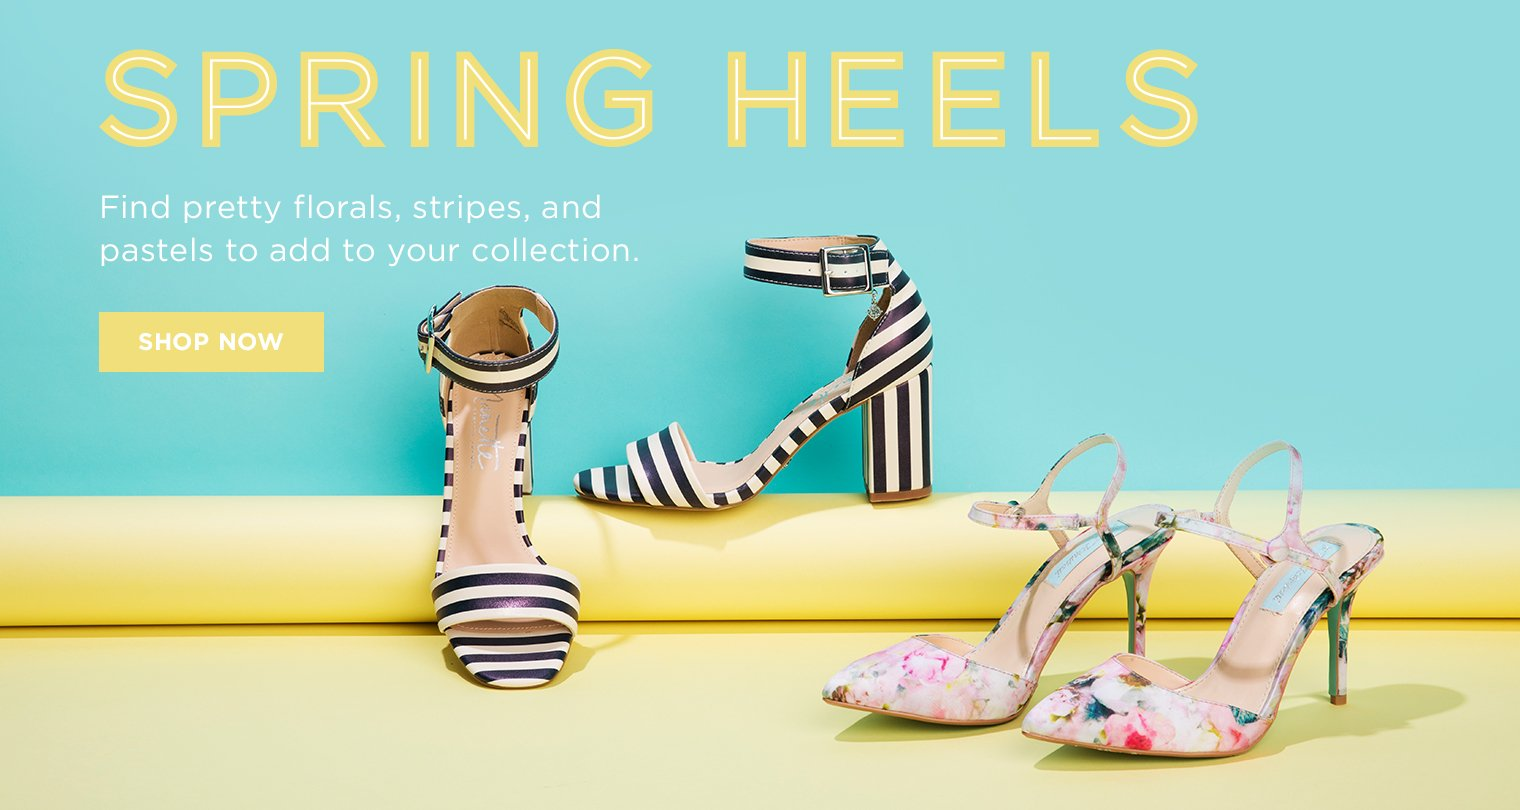 Spring Heels. Find pretty florals, stripes, and pastels to add to your collection.